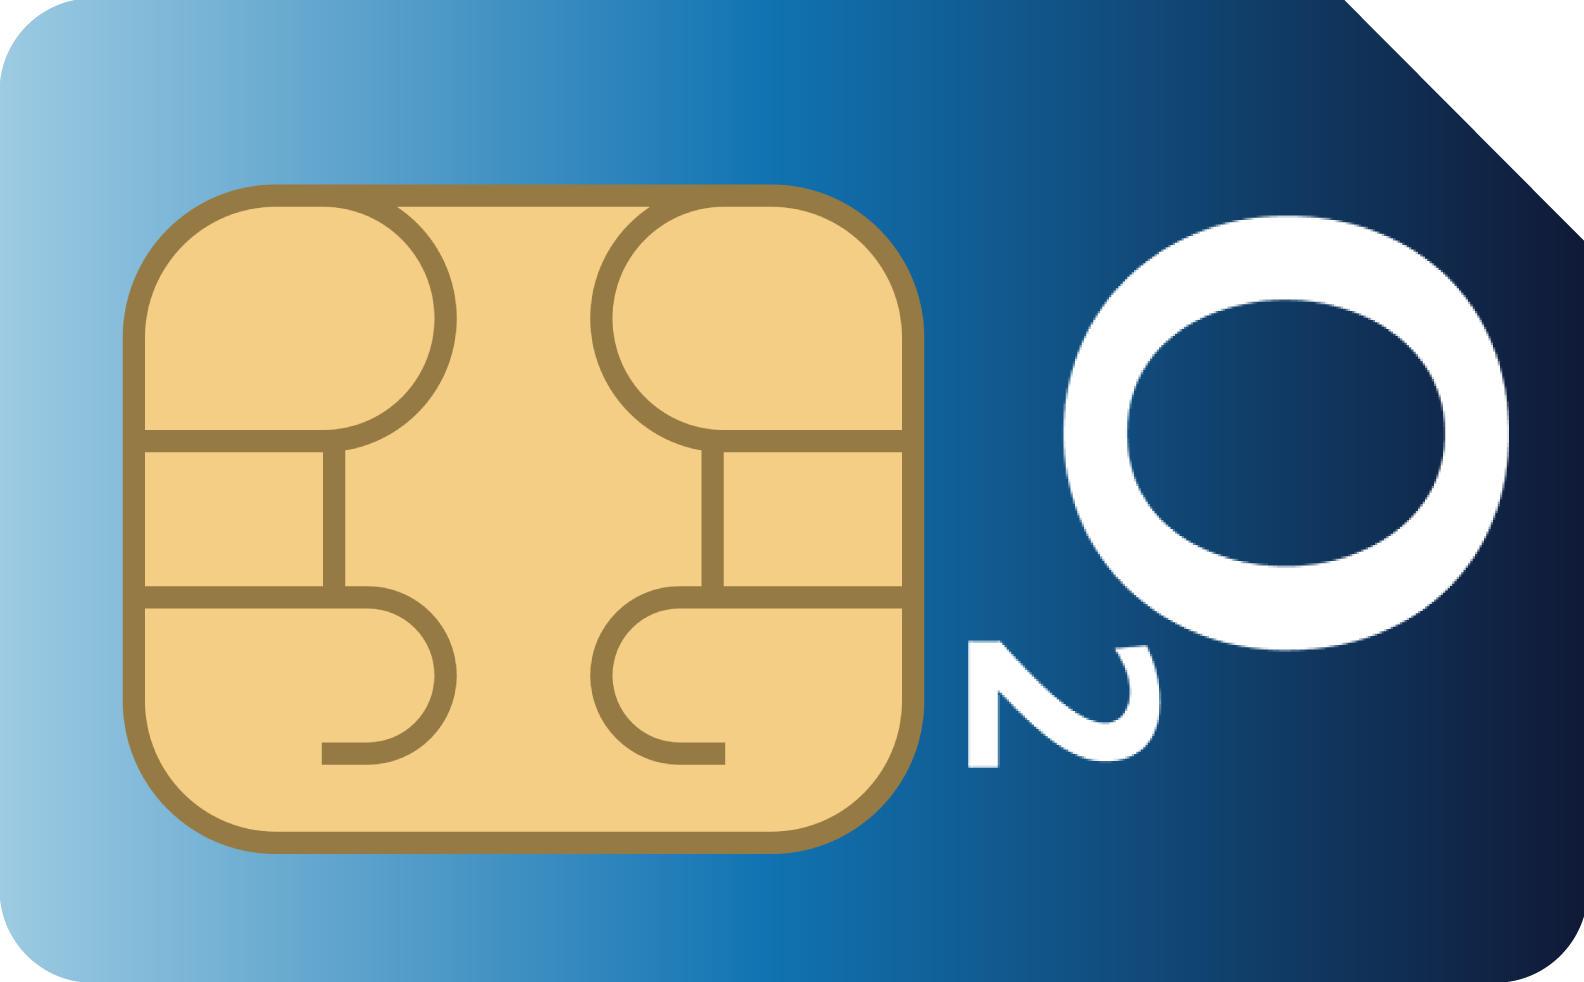 O2 SIM Only Deals – Compare and Find The Best Offers